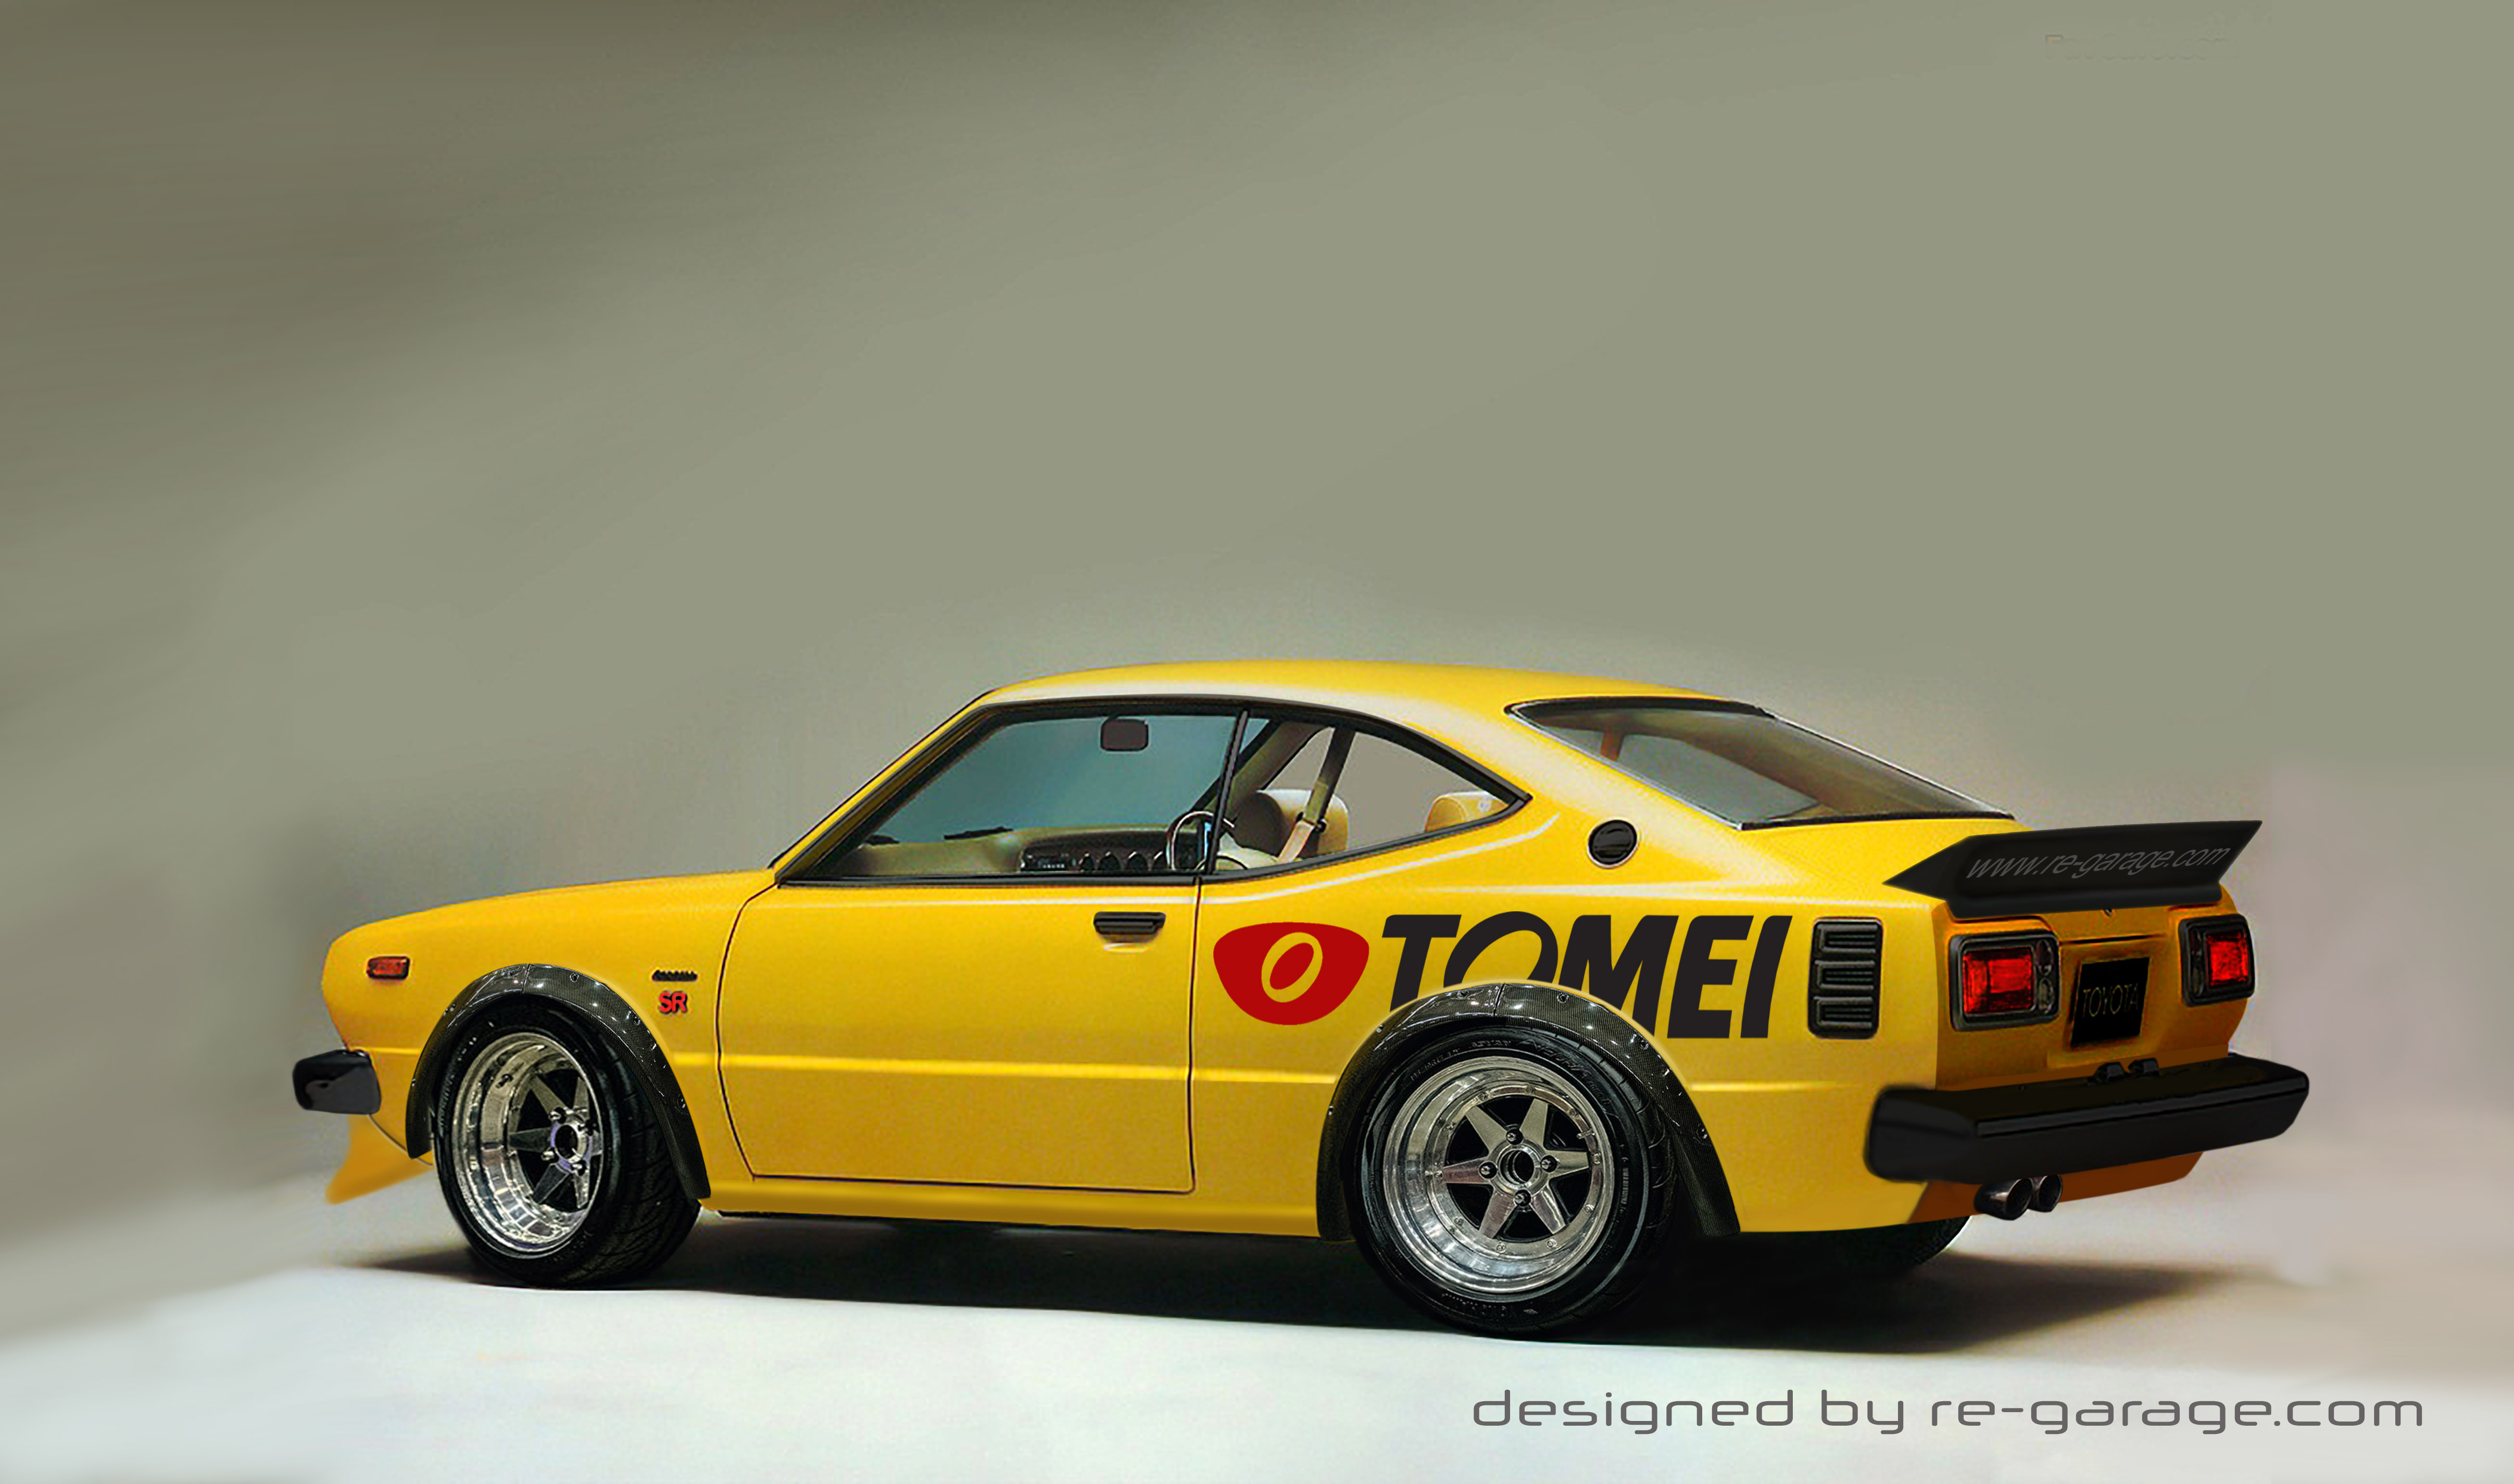 Toyota Corolla levin sr by re-garage-com